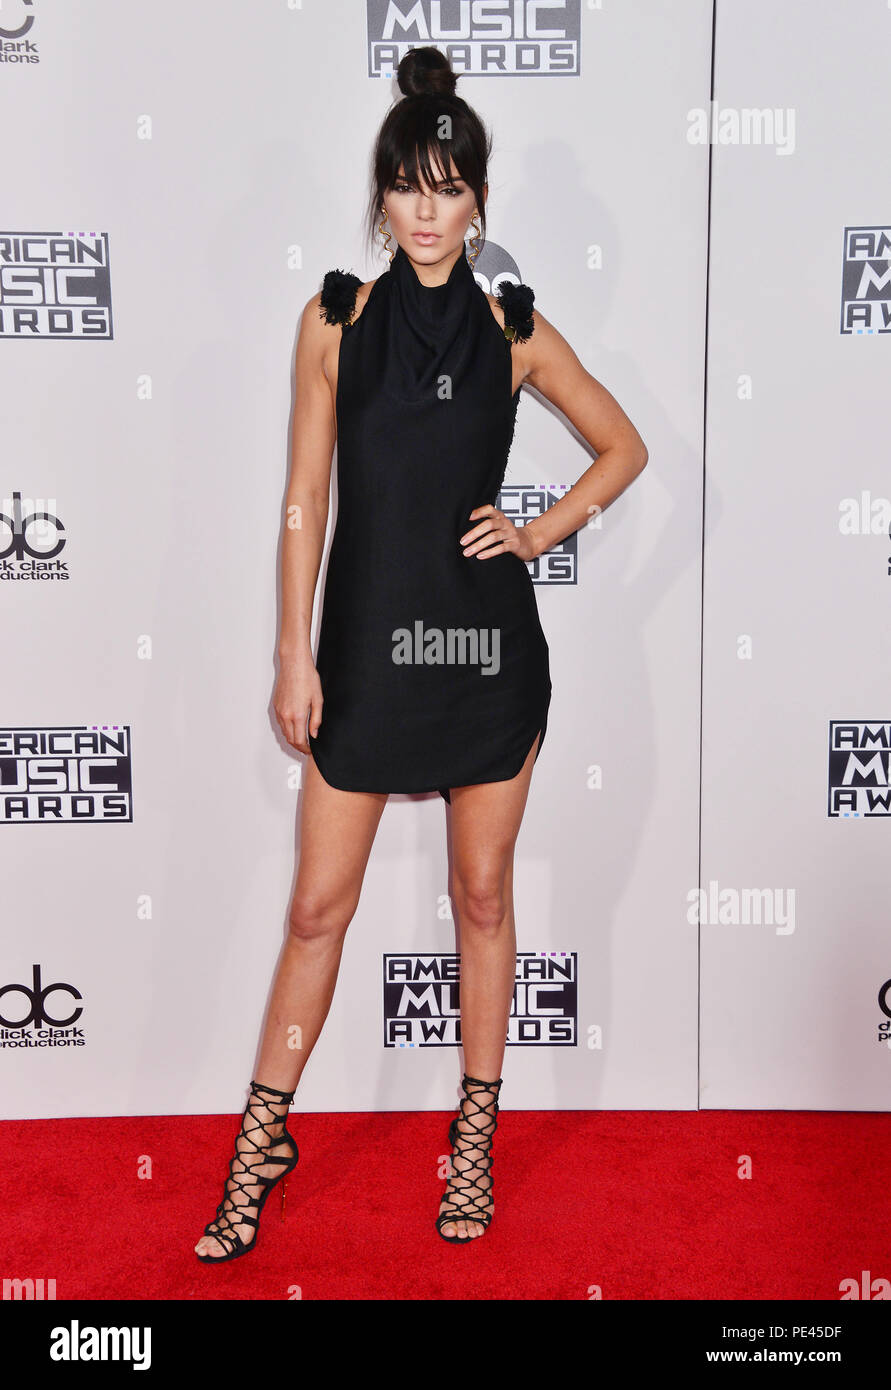 Kendall Jenner 303 auf 2015 Die American Music Awards, die in den Microsoft Theater in Los Angeles. November 22, 2015. Kendall Jenner 303 Veranstaltung in Hollywood Leben - Kalifornien, Red Carpet Event, USA, Filmindustrie, Prominente, Fotografie, Bestof, Kunst, Kultur und Unterhaltung, Topix prominente Mode, Besten, Hollywood Leben, Event in Hollywood Leben - Kalifornien, Roter Teppich und backstage, Film Stars, TV Stars, Musik, Promis, Topix, Bestof, Kunst, Kultur und Unterhaltung, vertikal, eine Person, Fotografie, Mode, volle Länge, 2015 Anfrage tsuni@Gamma-USA.com, Kredit Tsuni/ Stockfoto